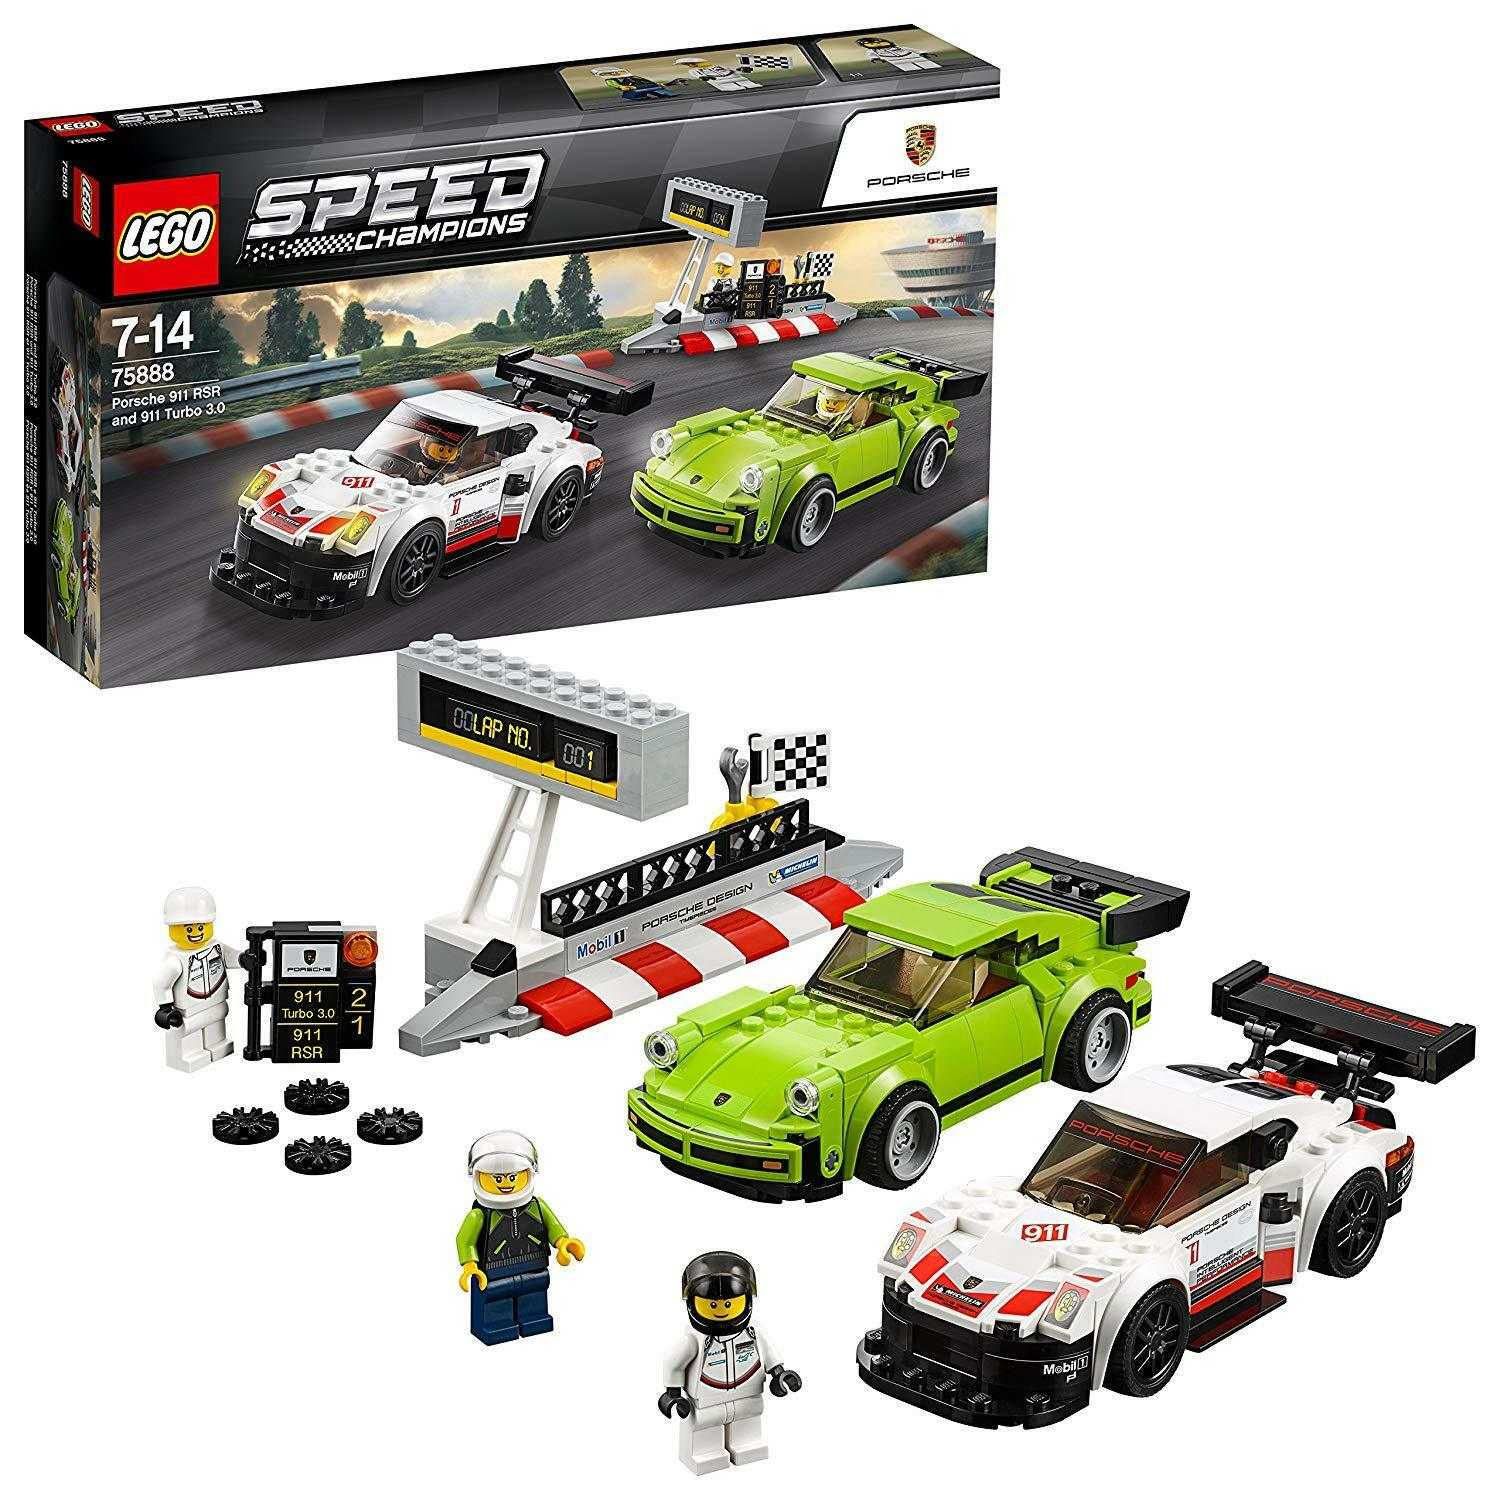 Lego 75888 Speed Champions Porsche 911 RSR and 911 Turbo 3.0 NEW & OVP